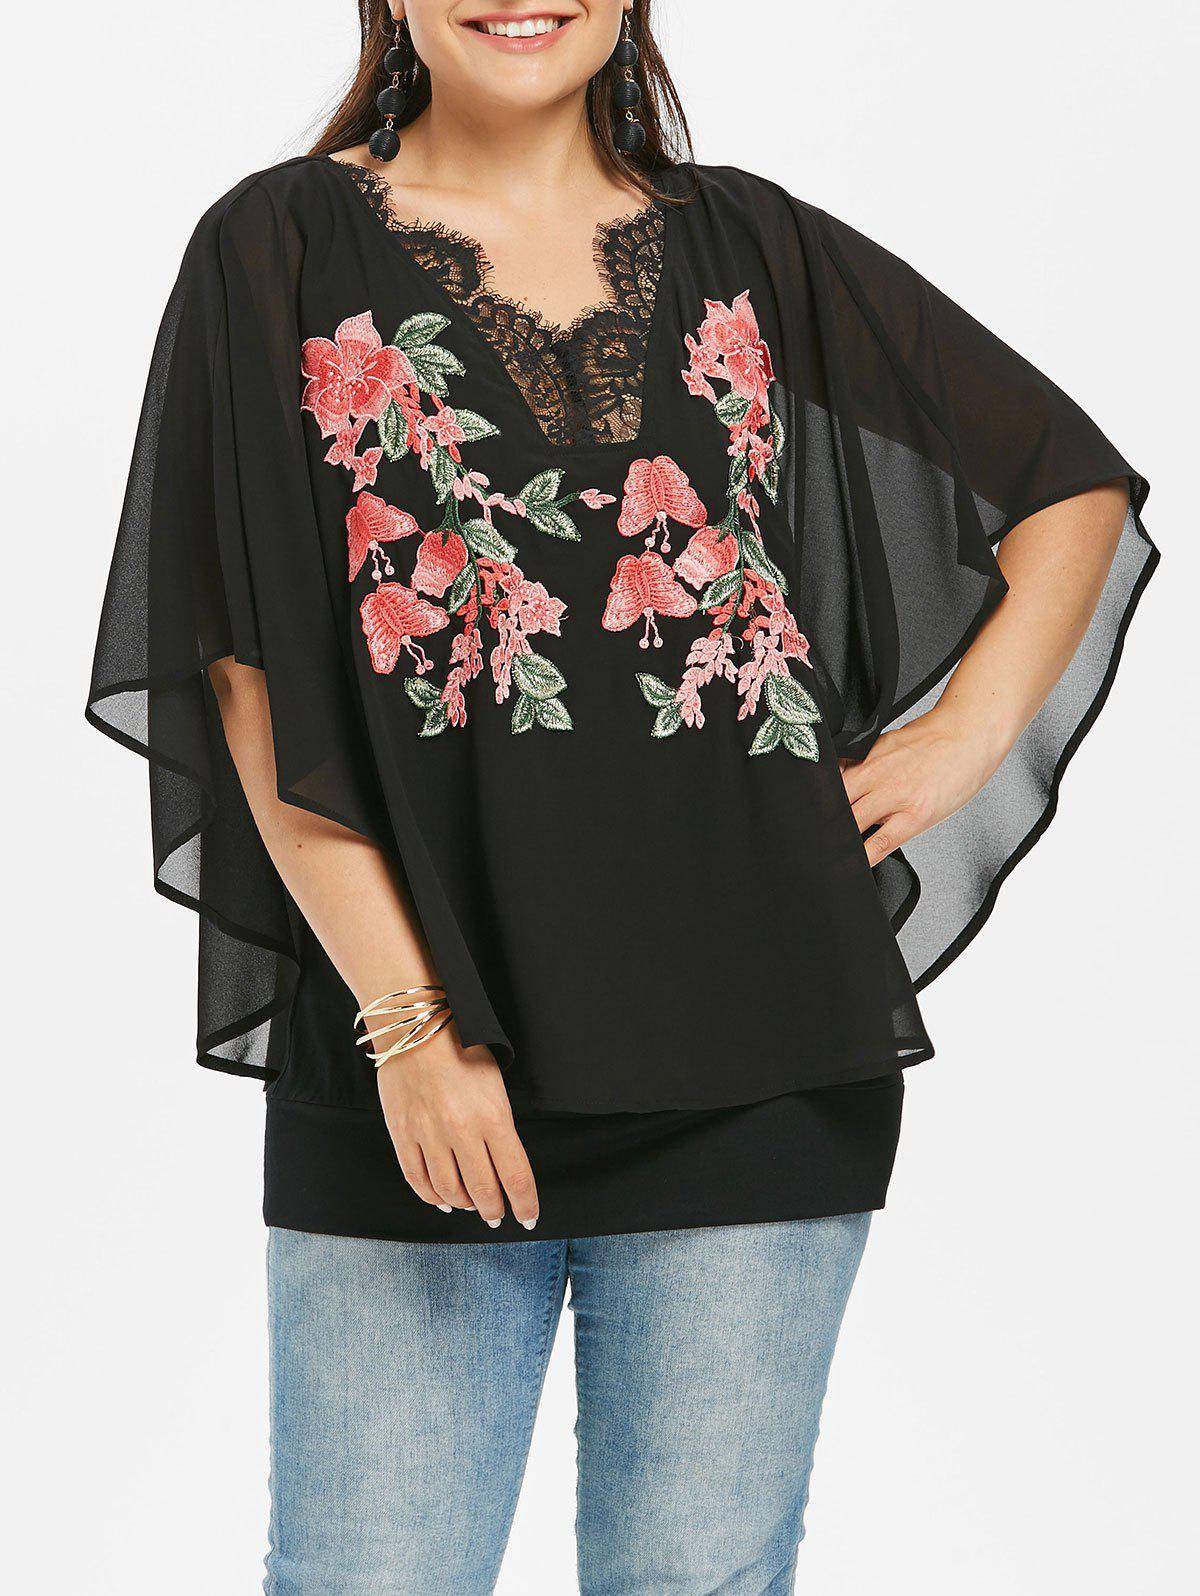 ef7b4edcd5028 62% OFF   2019 Rosegal Plus Size Embroidery V Neck Overlay Blouse ...